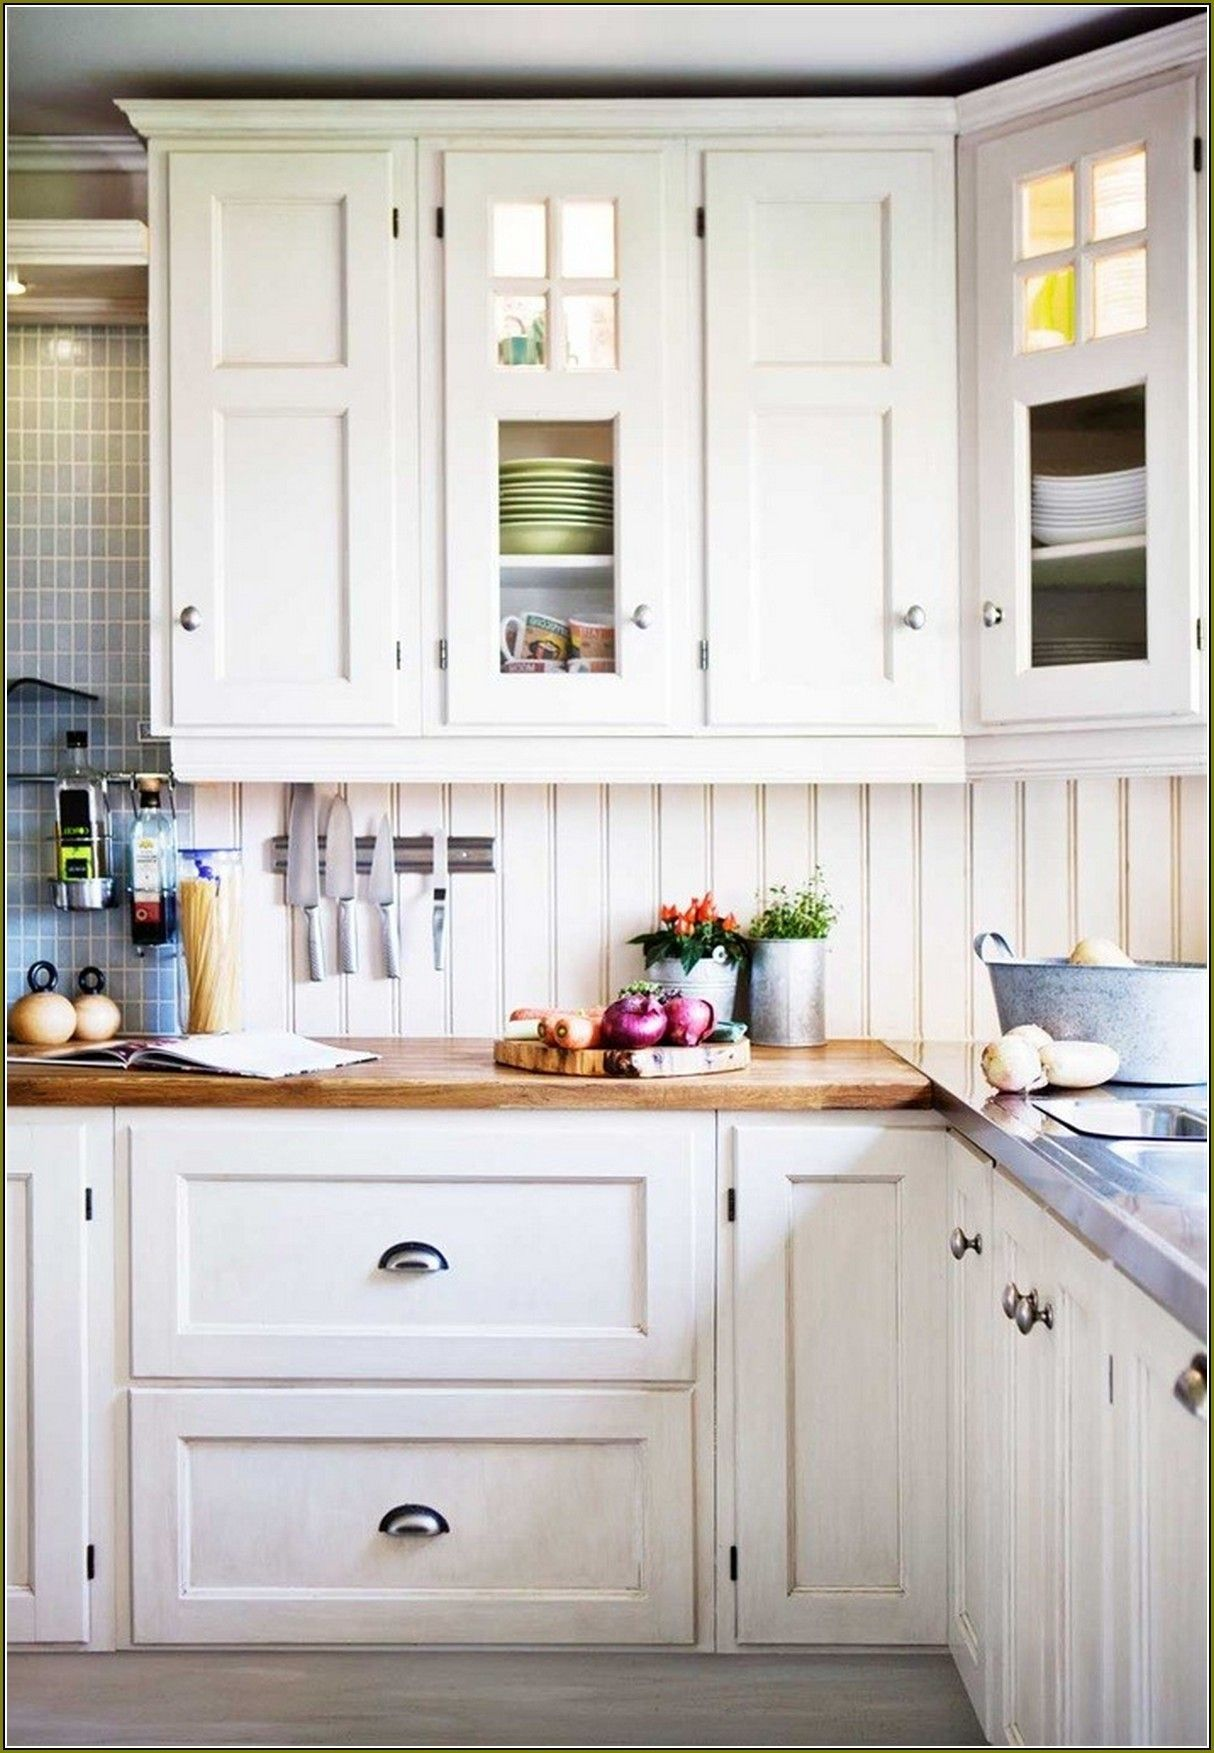 Kitchen Cabinet Doors With Knobs | http://betdaffaires.com | Pinterest